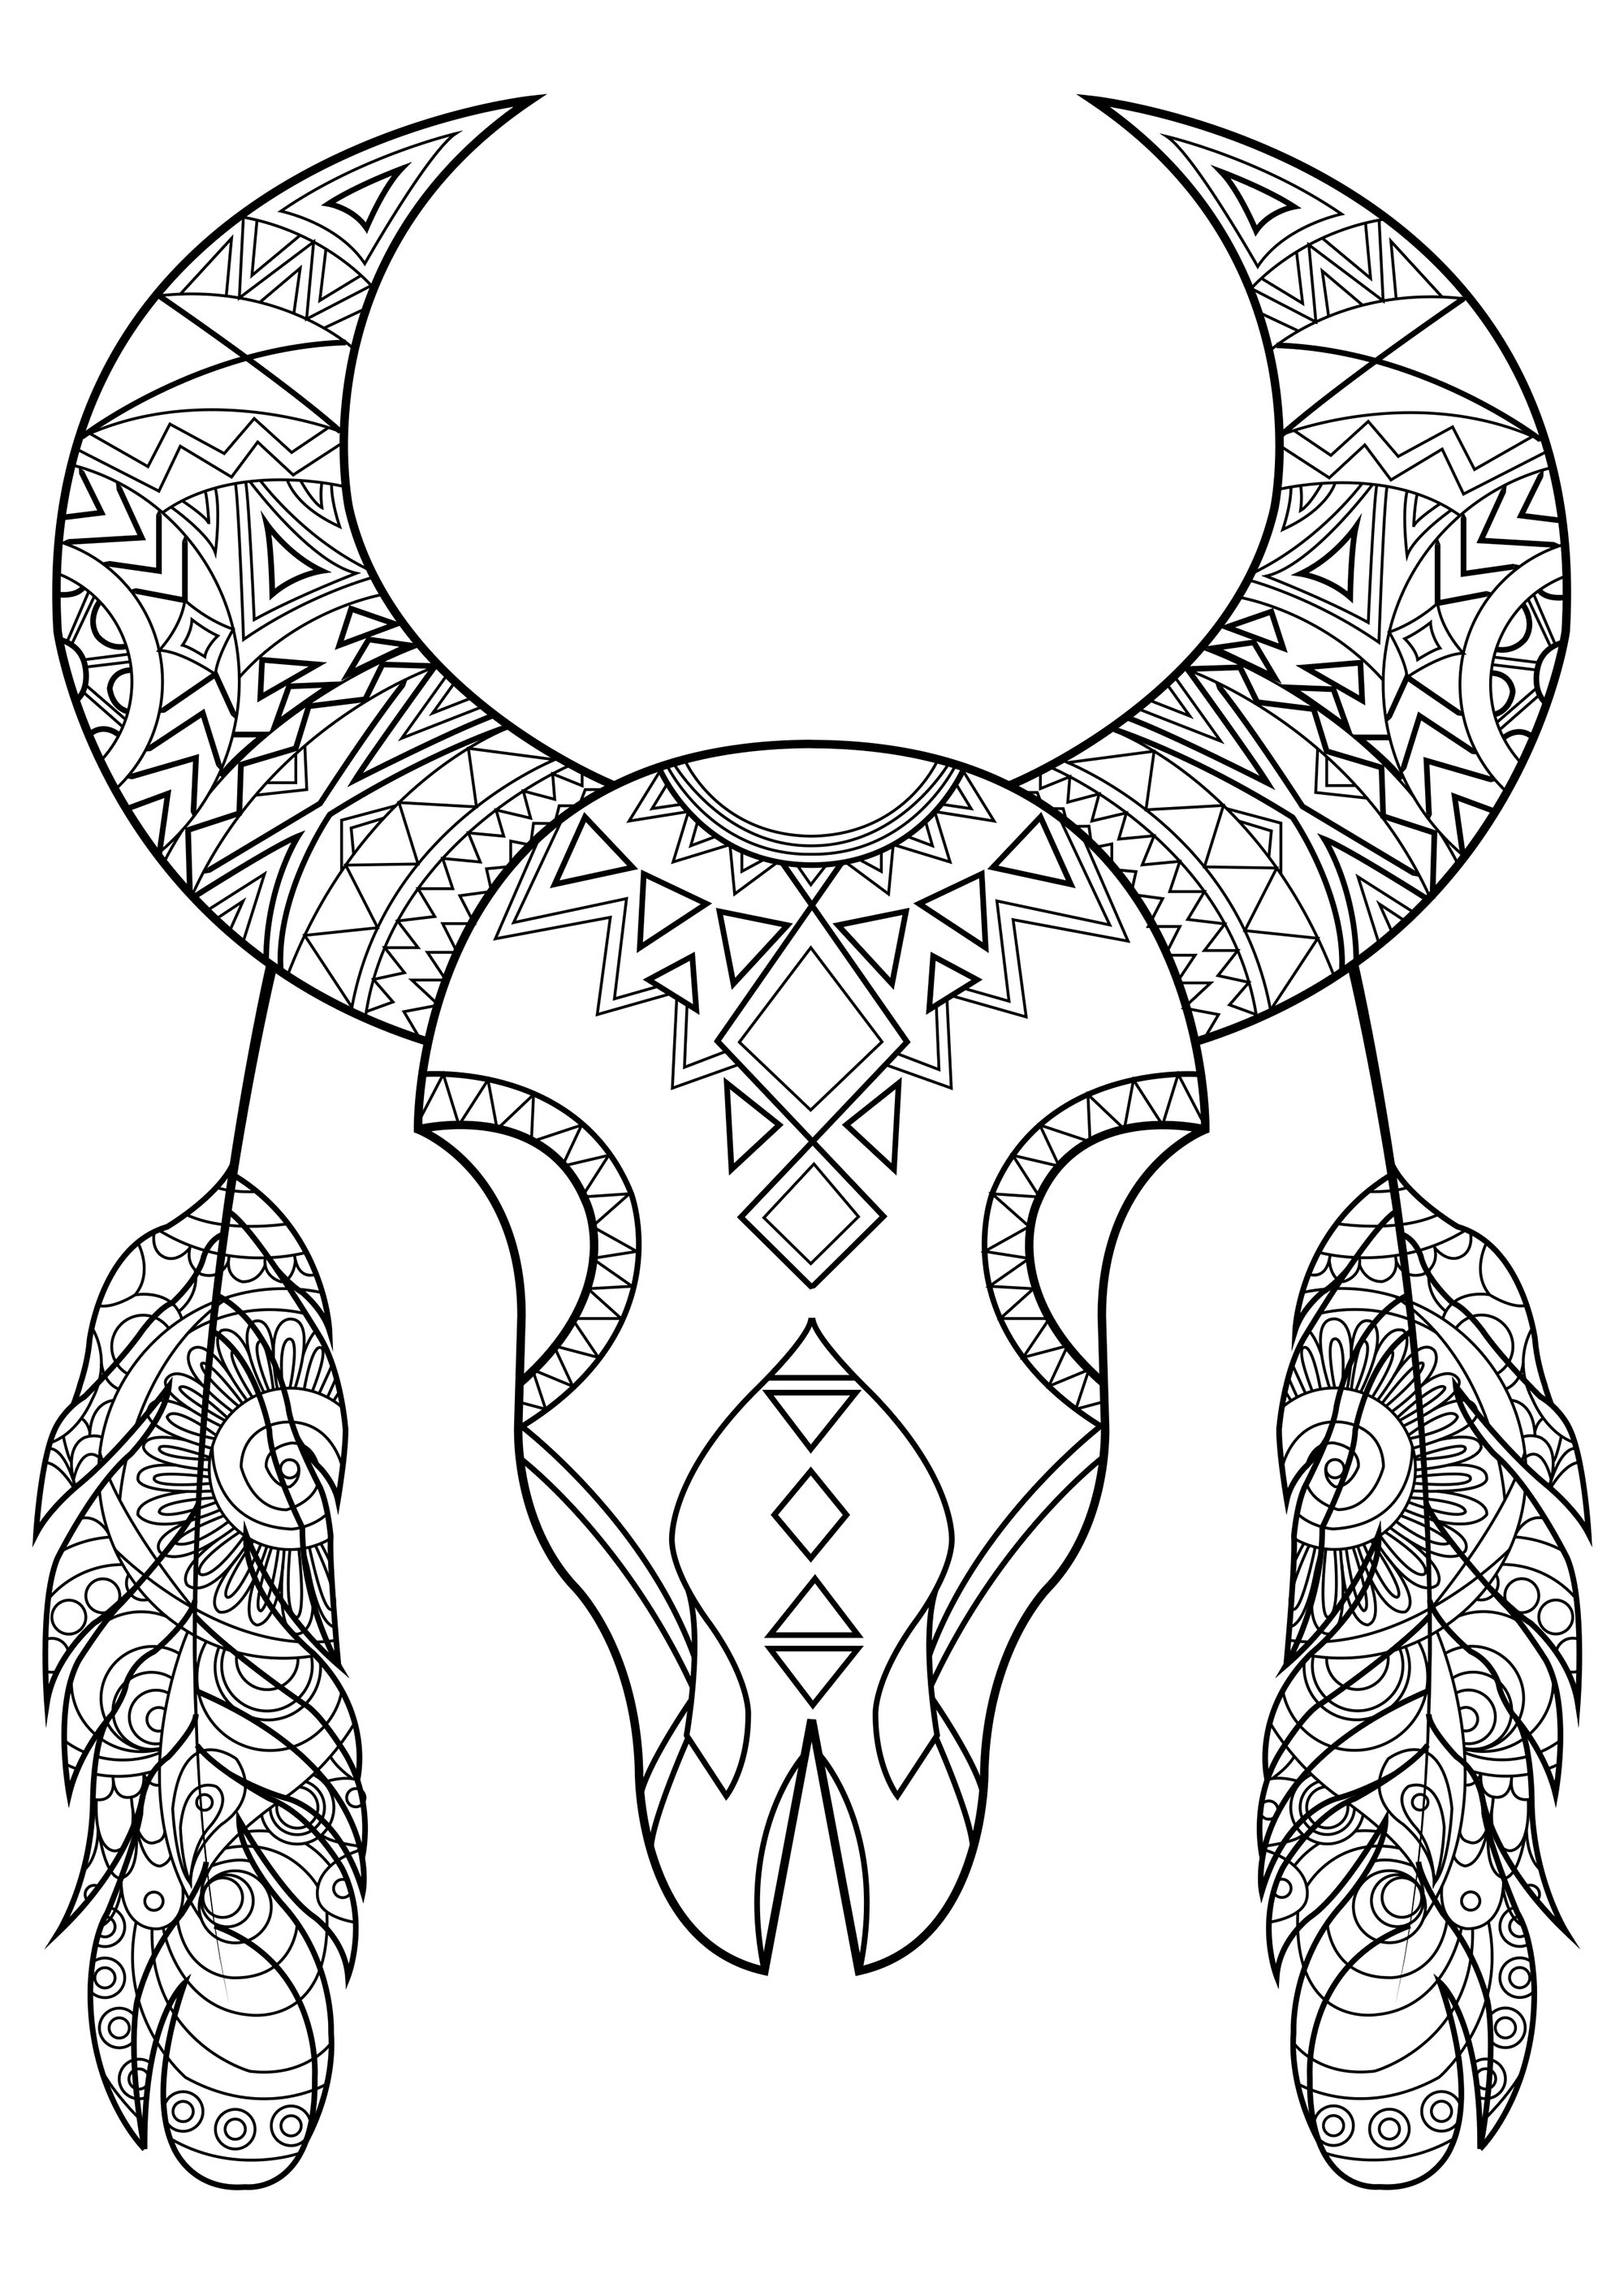 native art coloring pages native american eagle drawing at getdrawings free download native pages art coloring